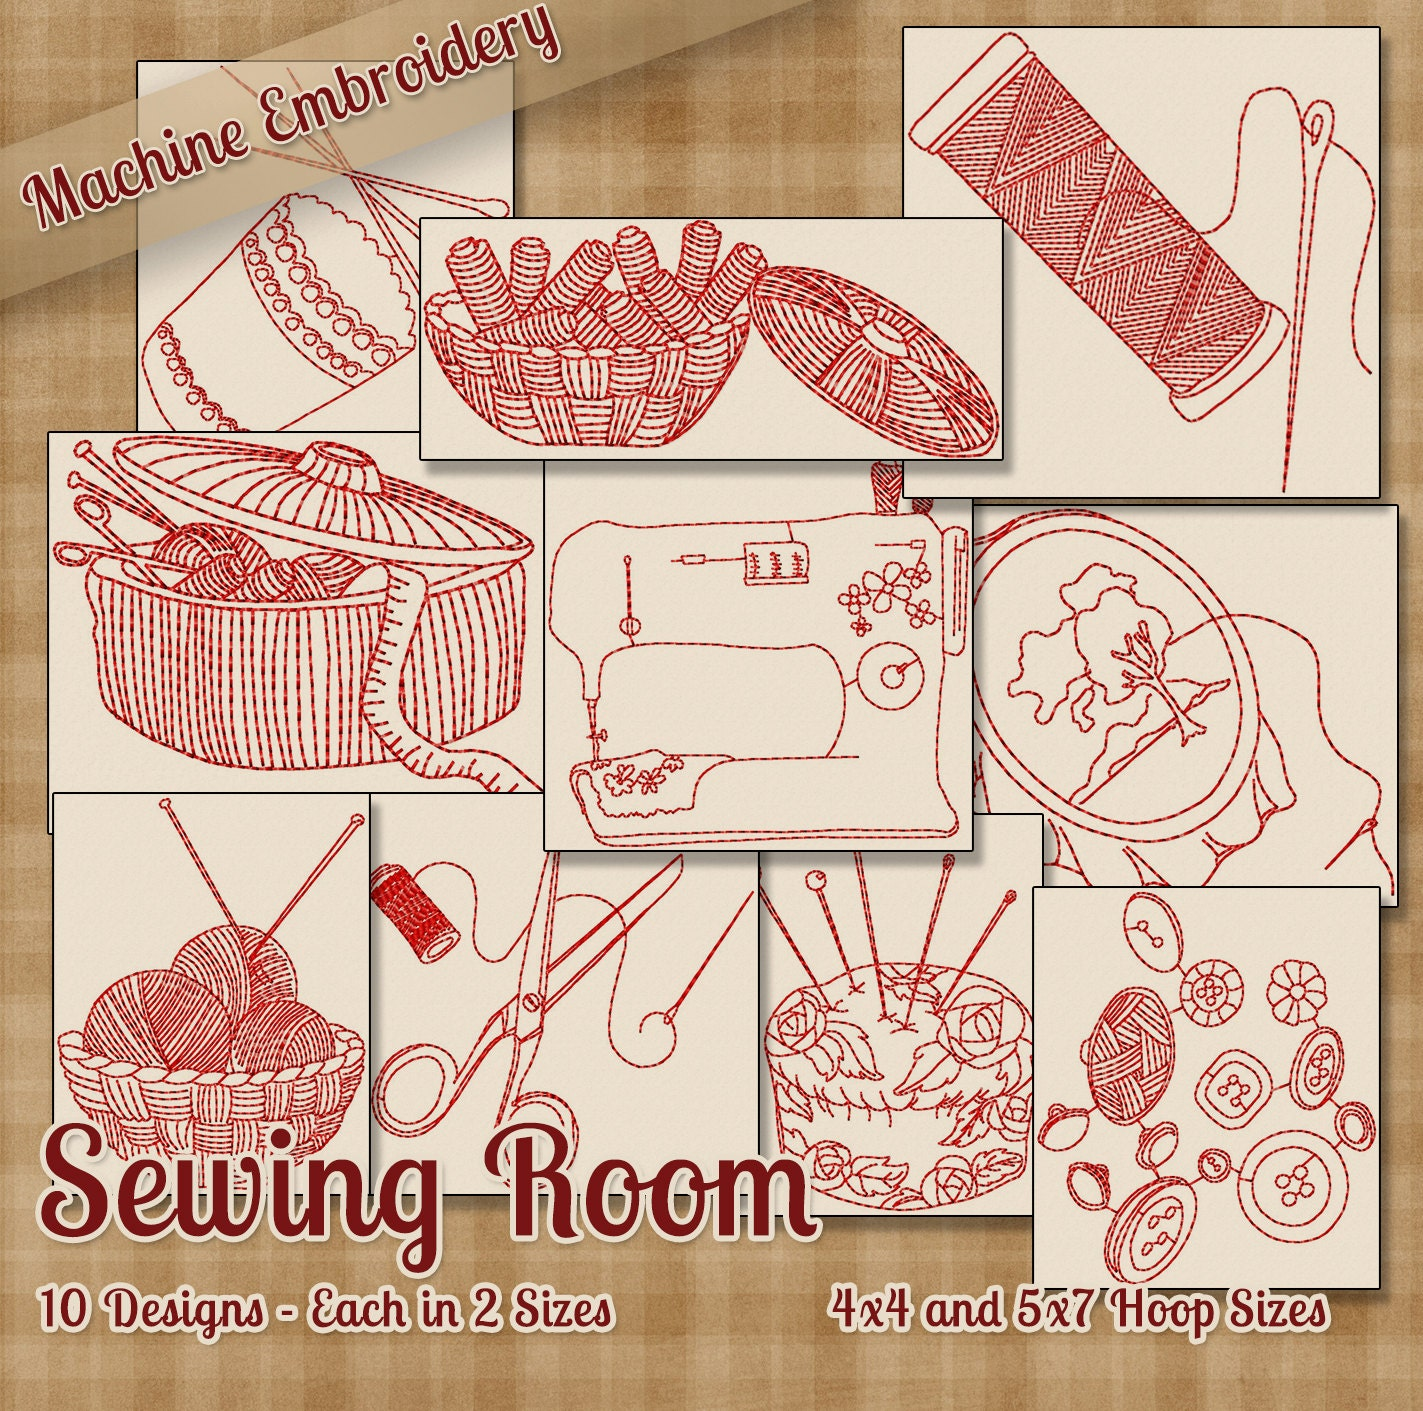 Sewing Room Redwork Embroidery Machine Designs 10 Patterns 2